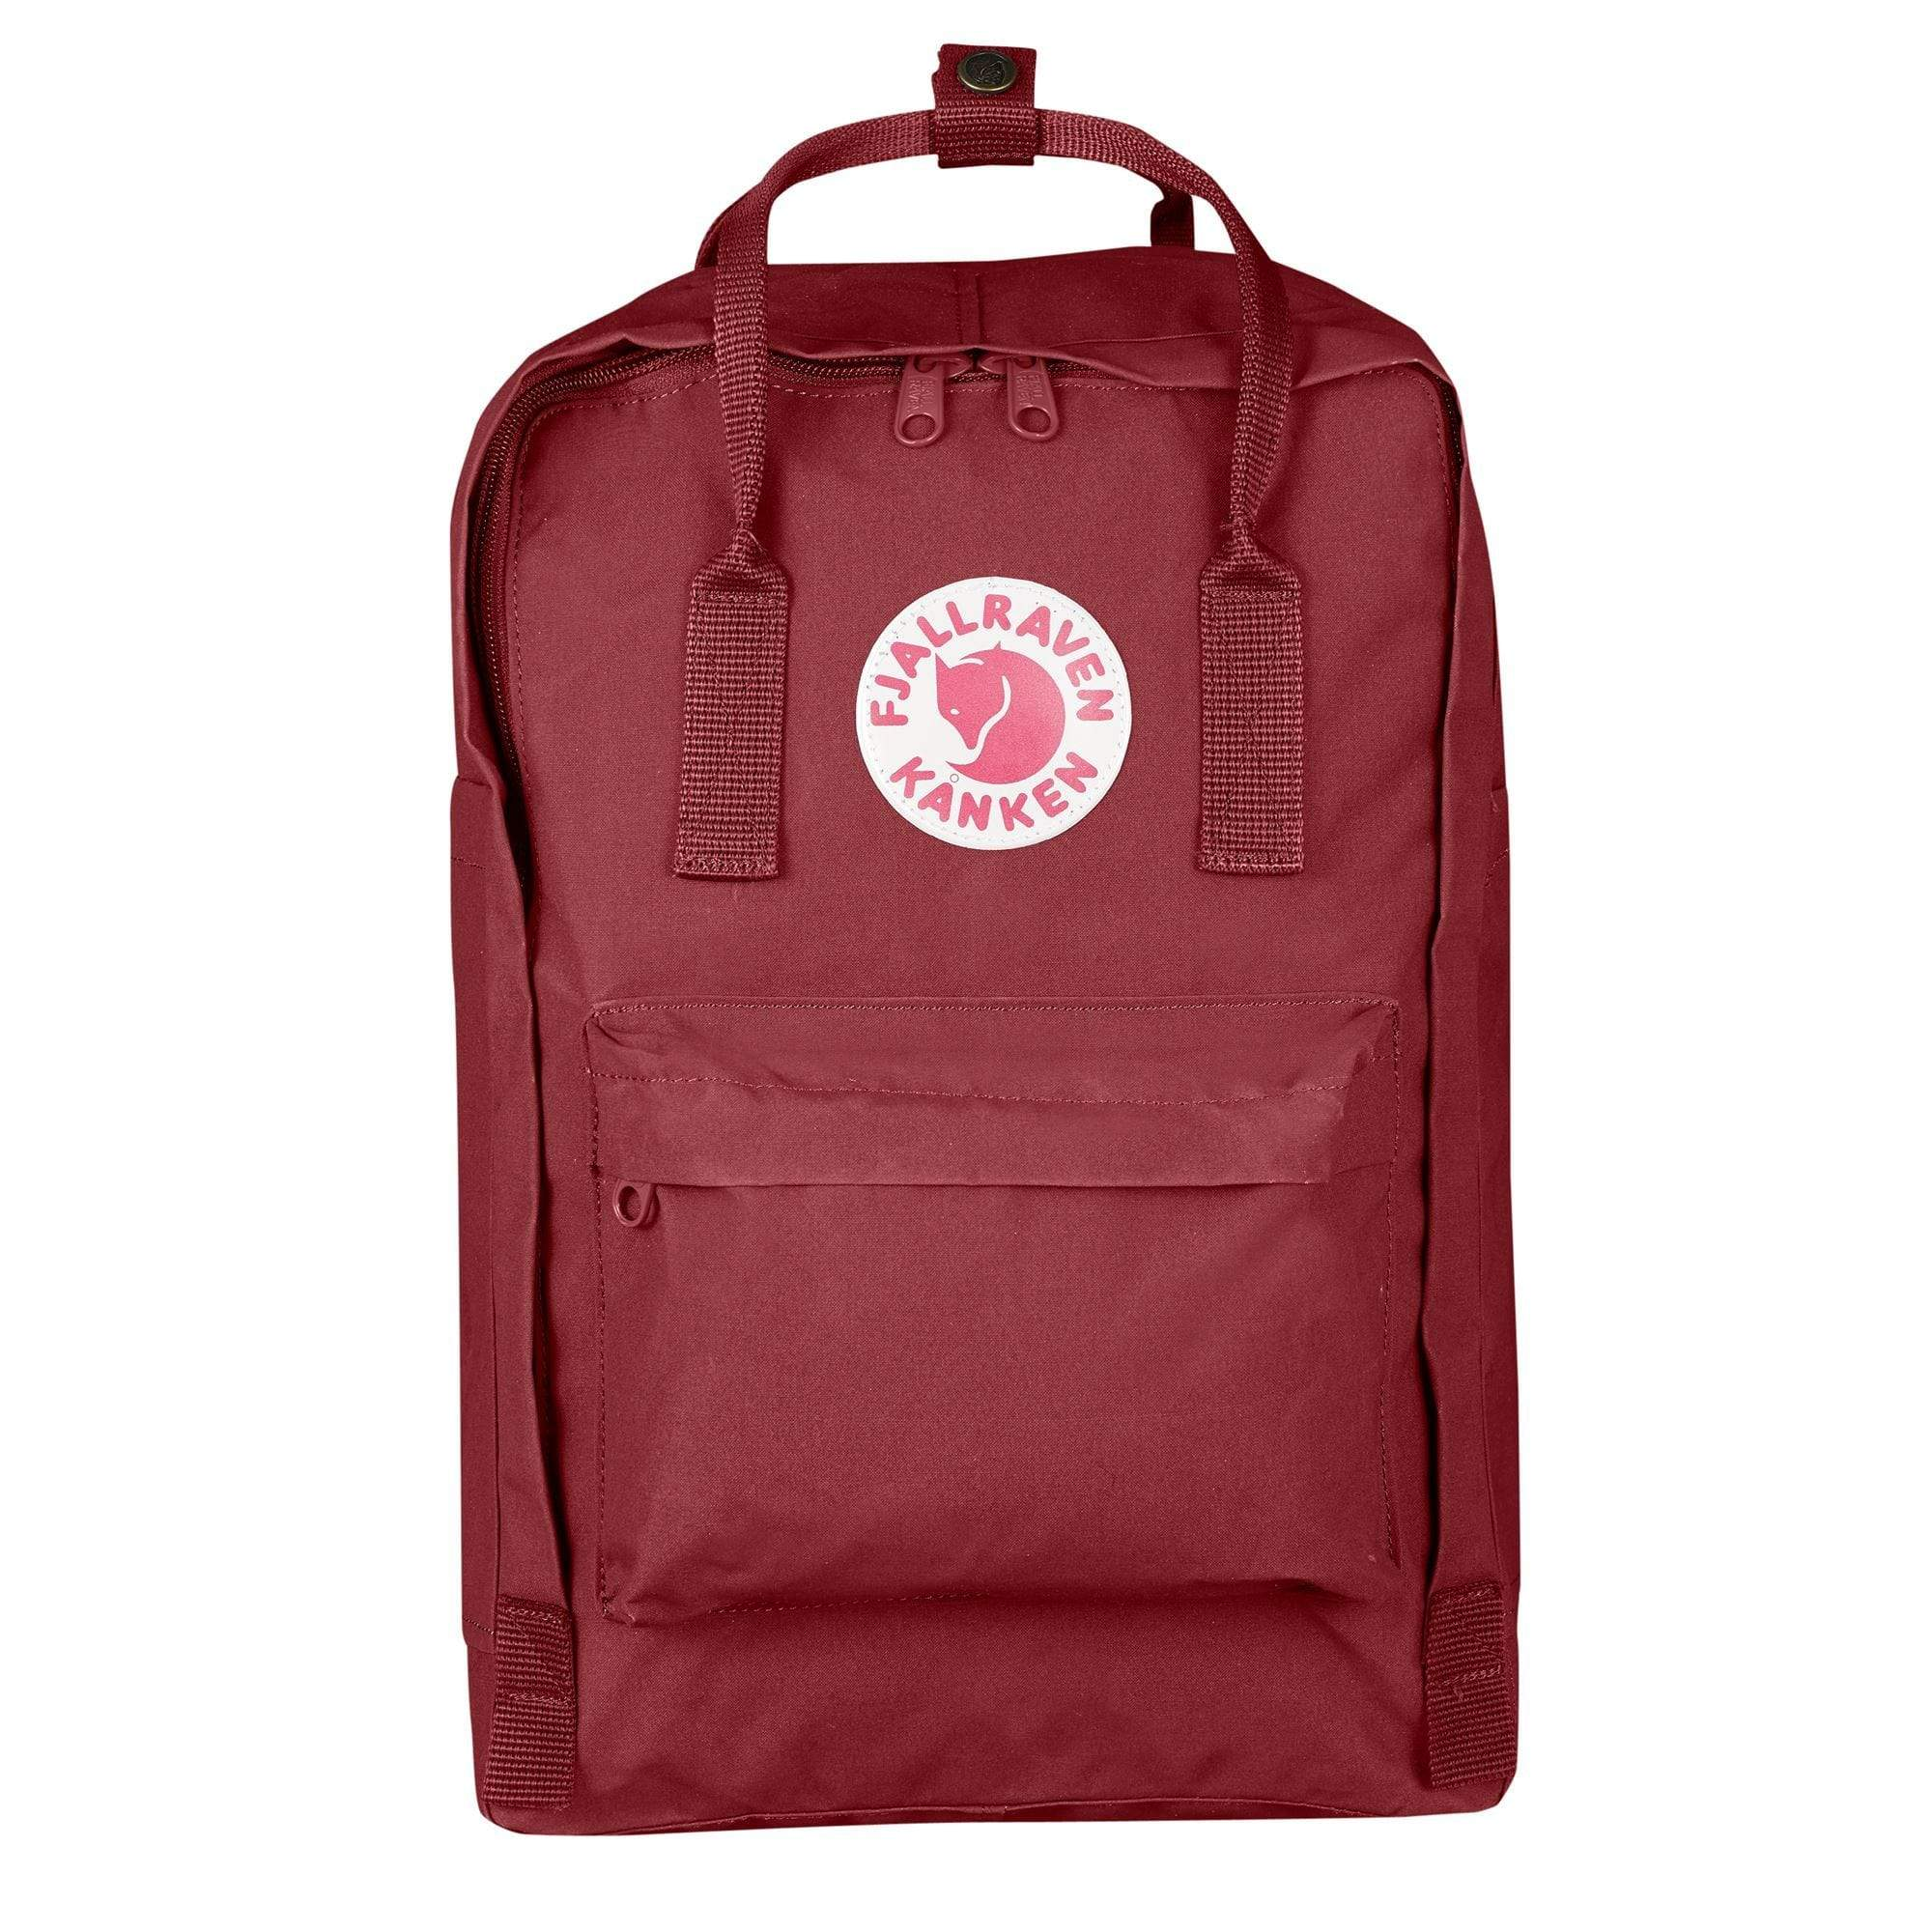 "Fjällräven Bags One Size / Ox Red FJÄLLRÄVEN - Kånken 15"" Laptop Backpack"